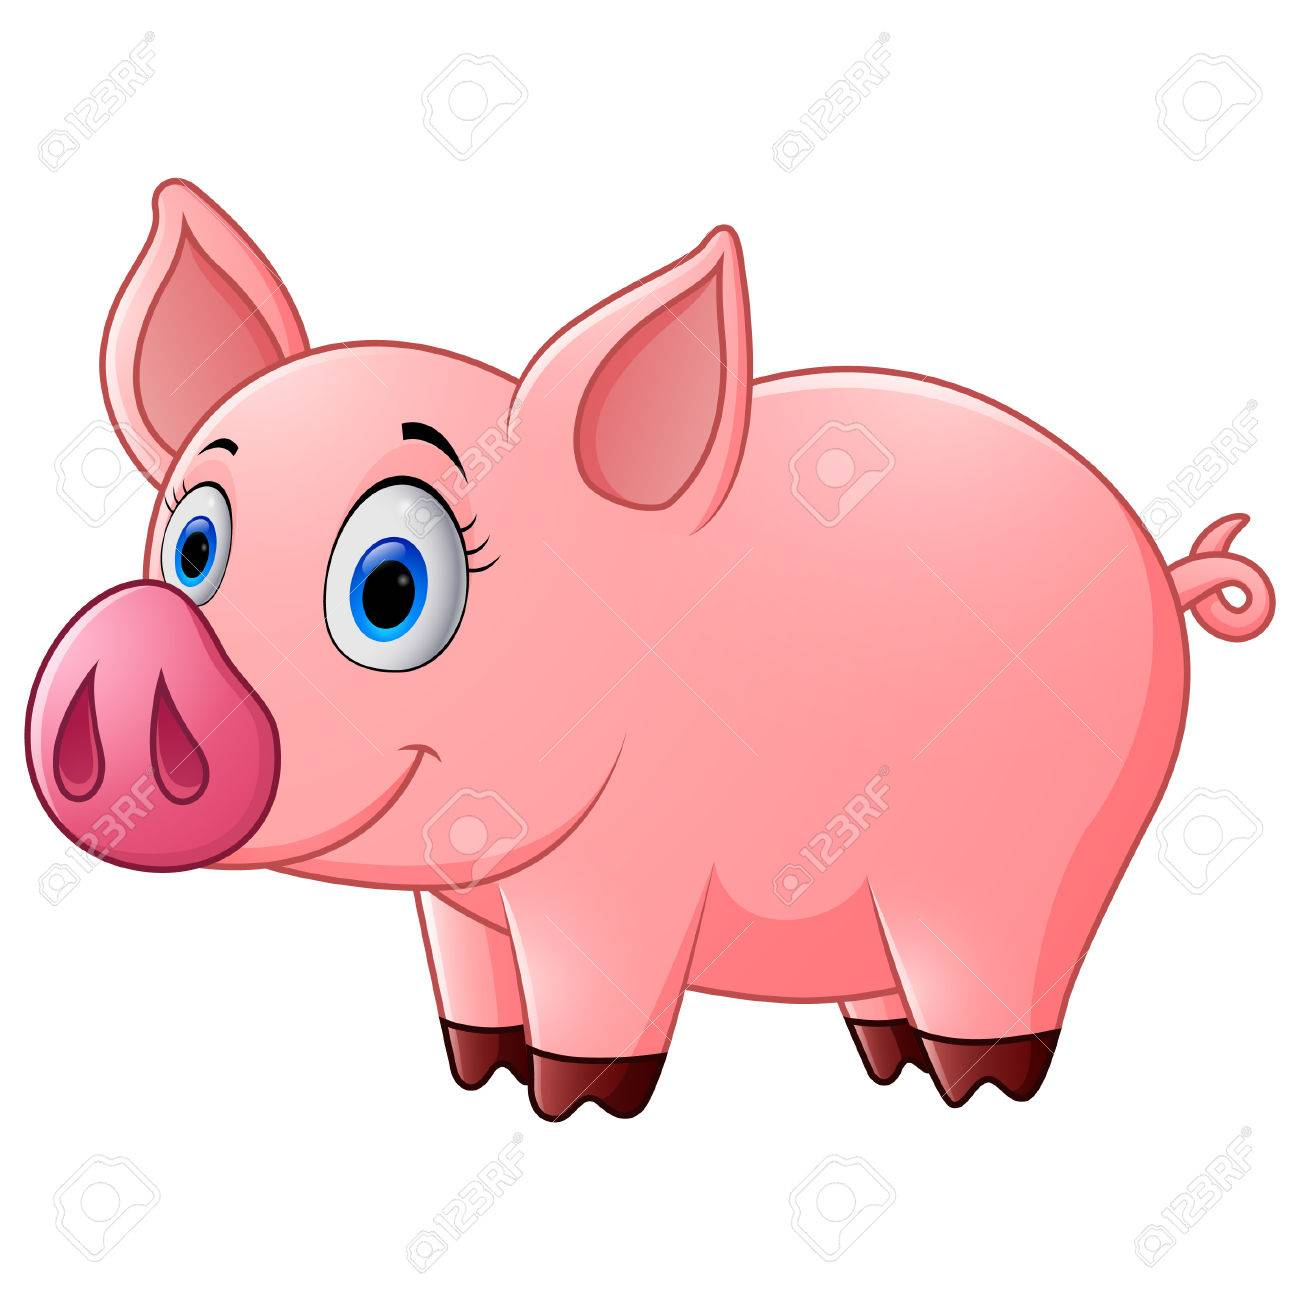 1300x1300 Cute Baby Pig Cartoon Stock Photo, Picture And Royalty Free Image